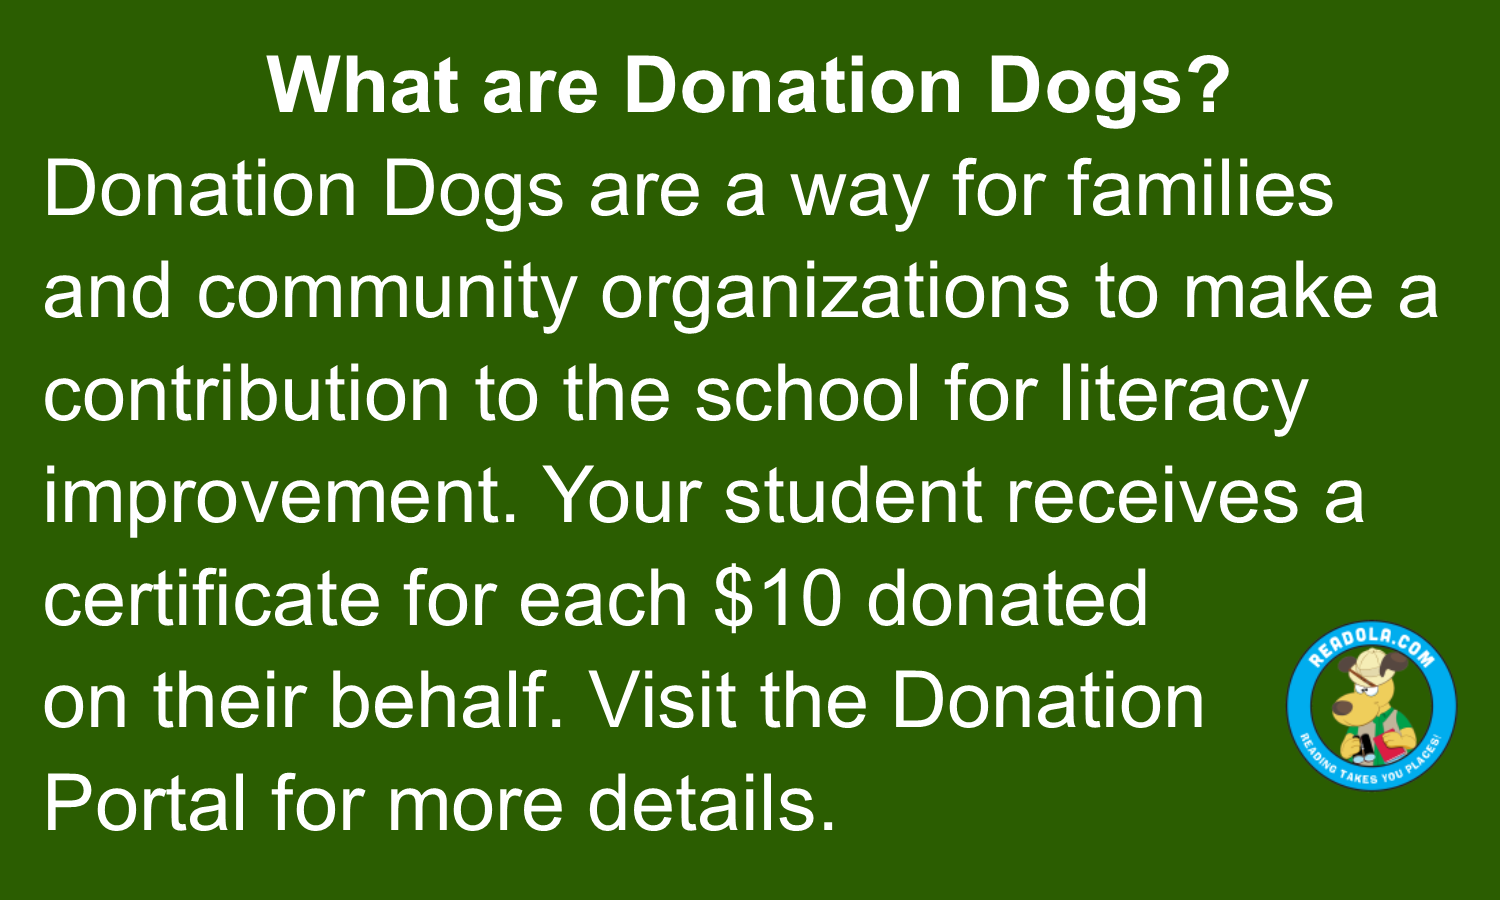 donation-dog-3-button-2022.png